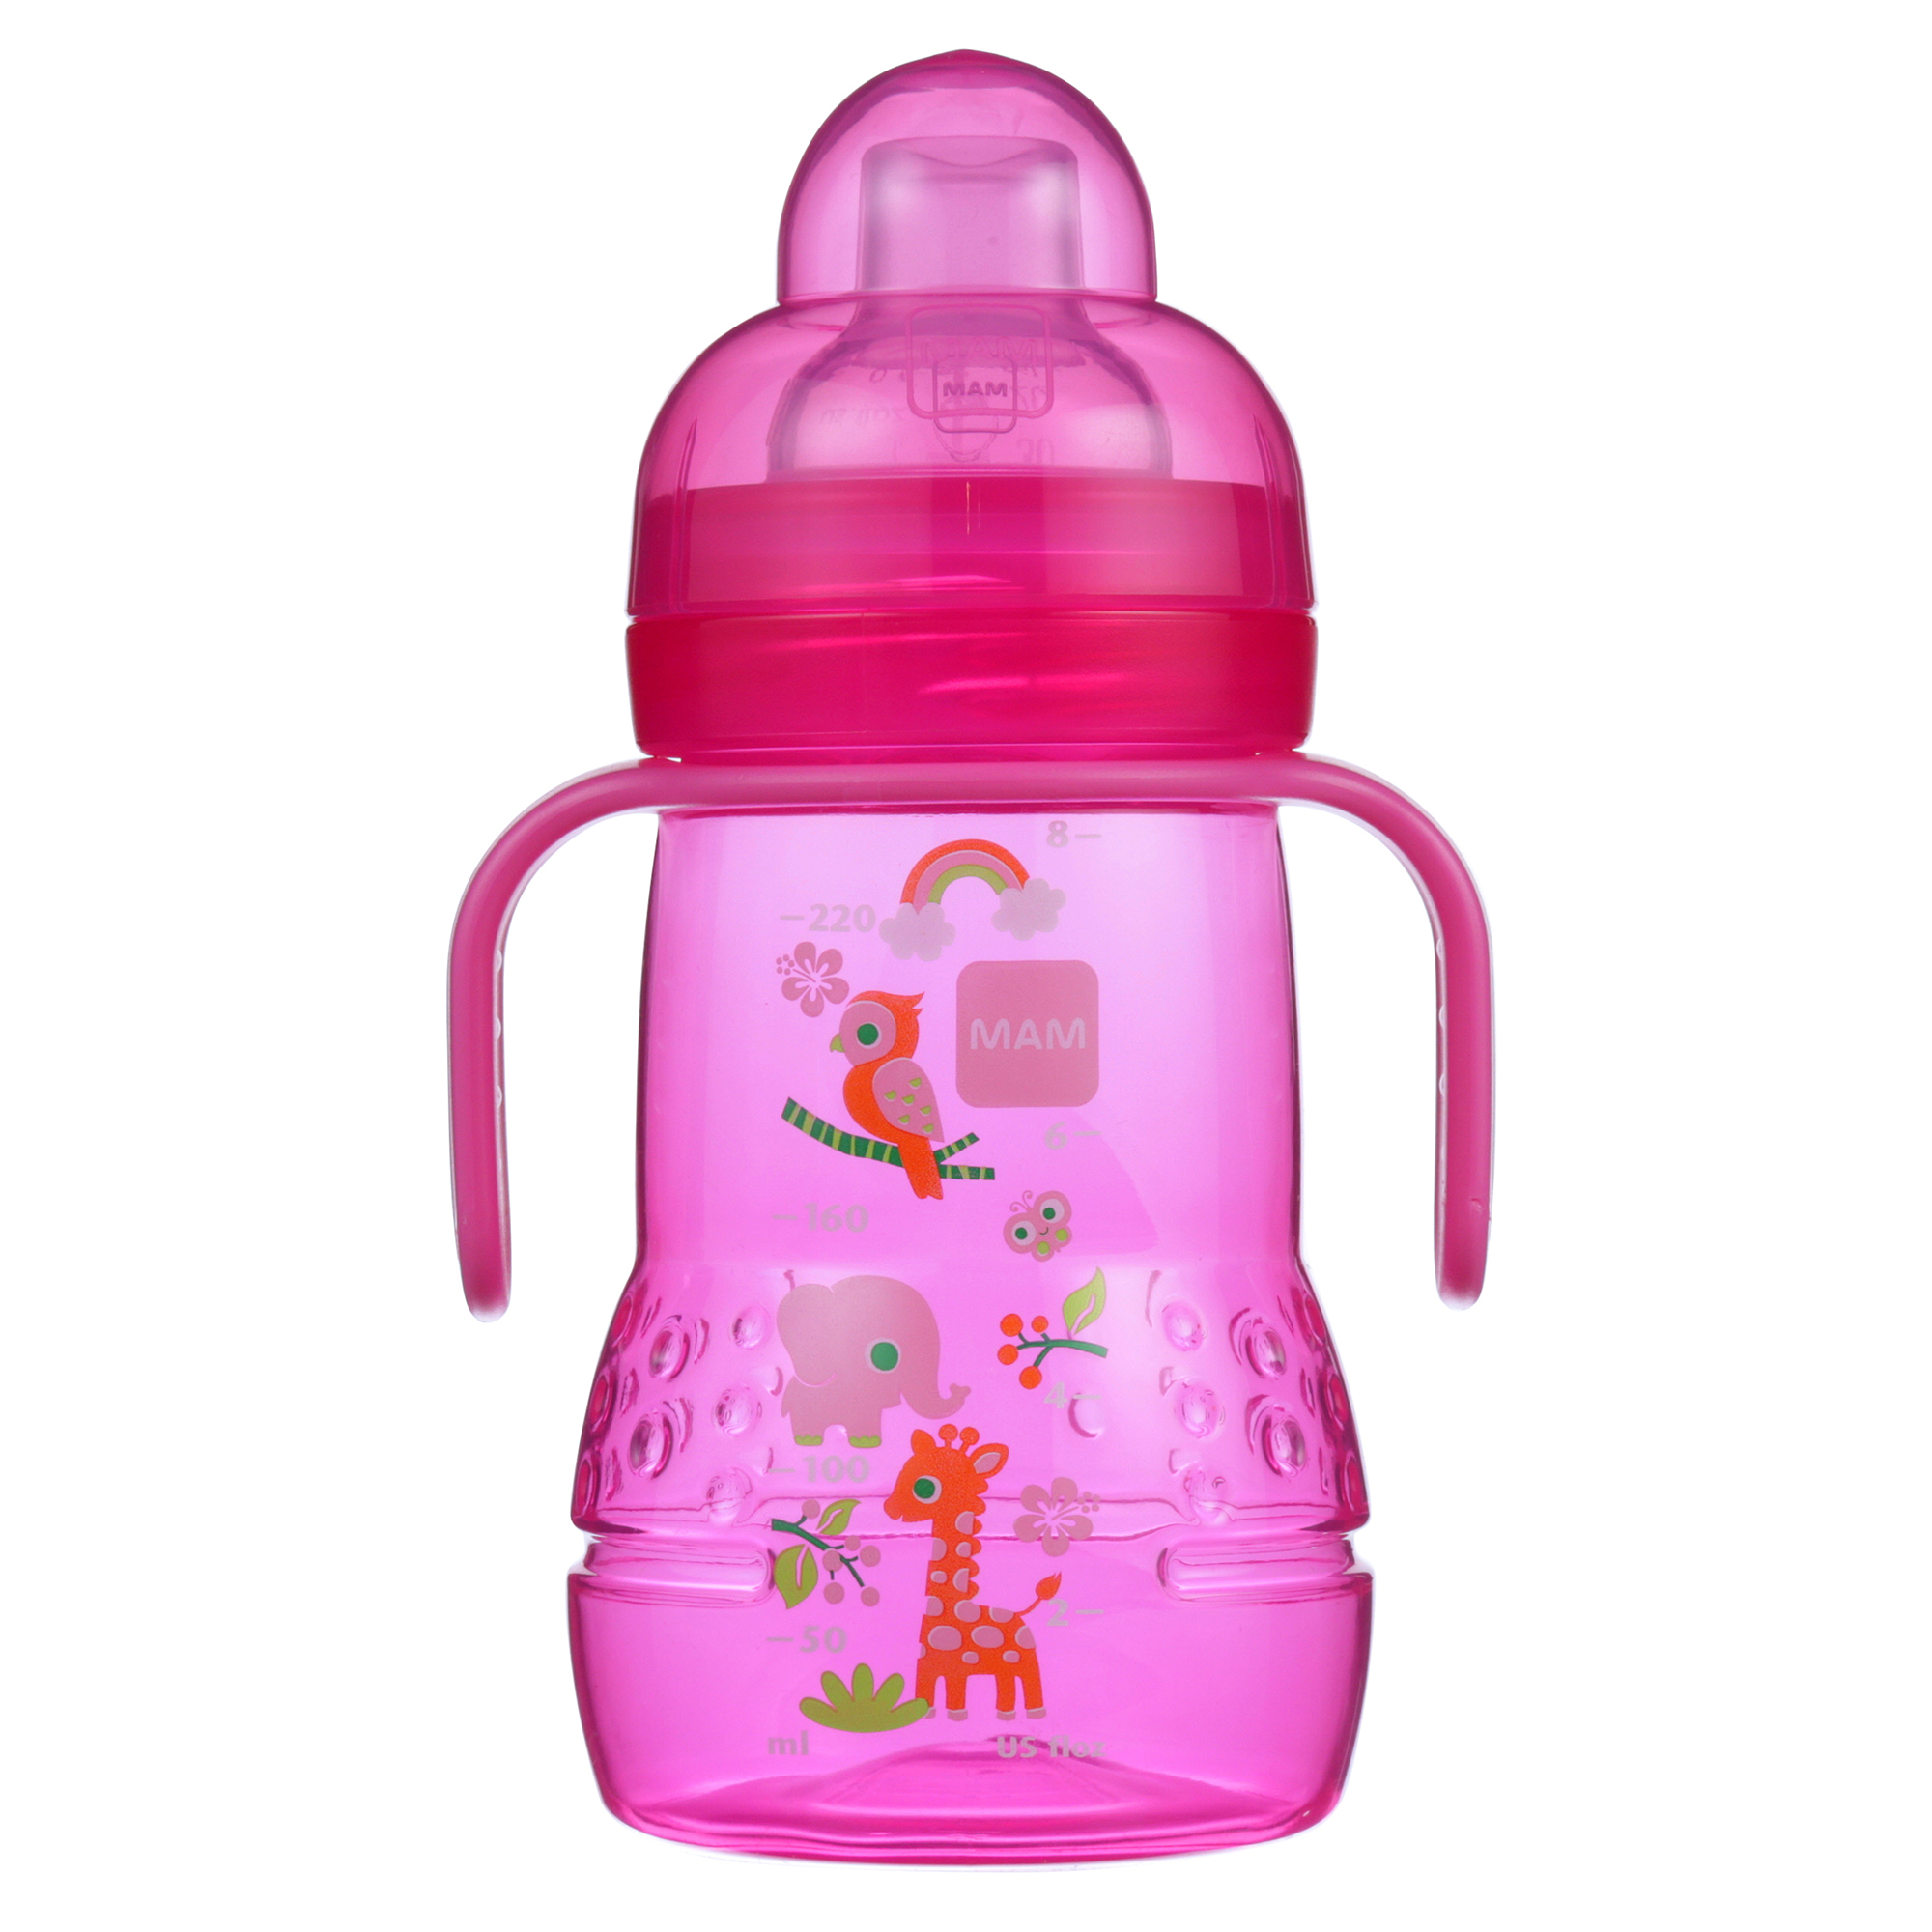 MAM Trainer Cup with nipple and extra soft spout, 8 oz, 1-Count, Girl